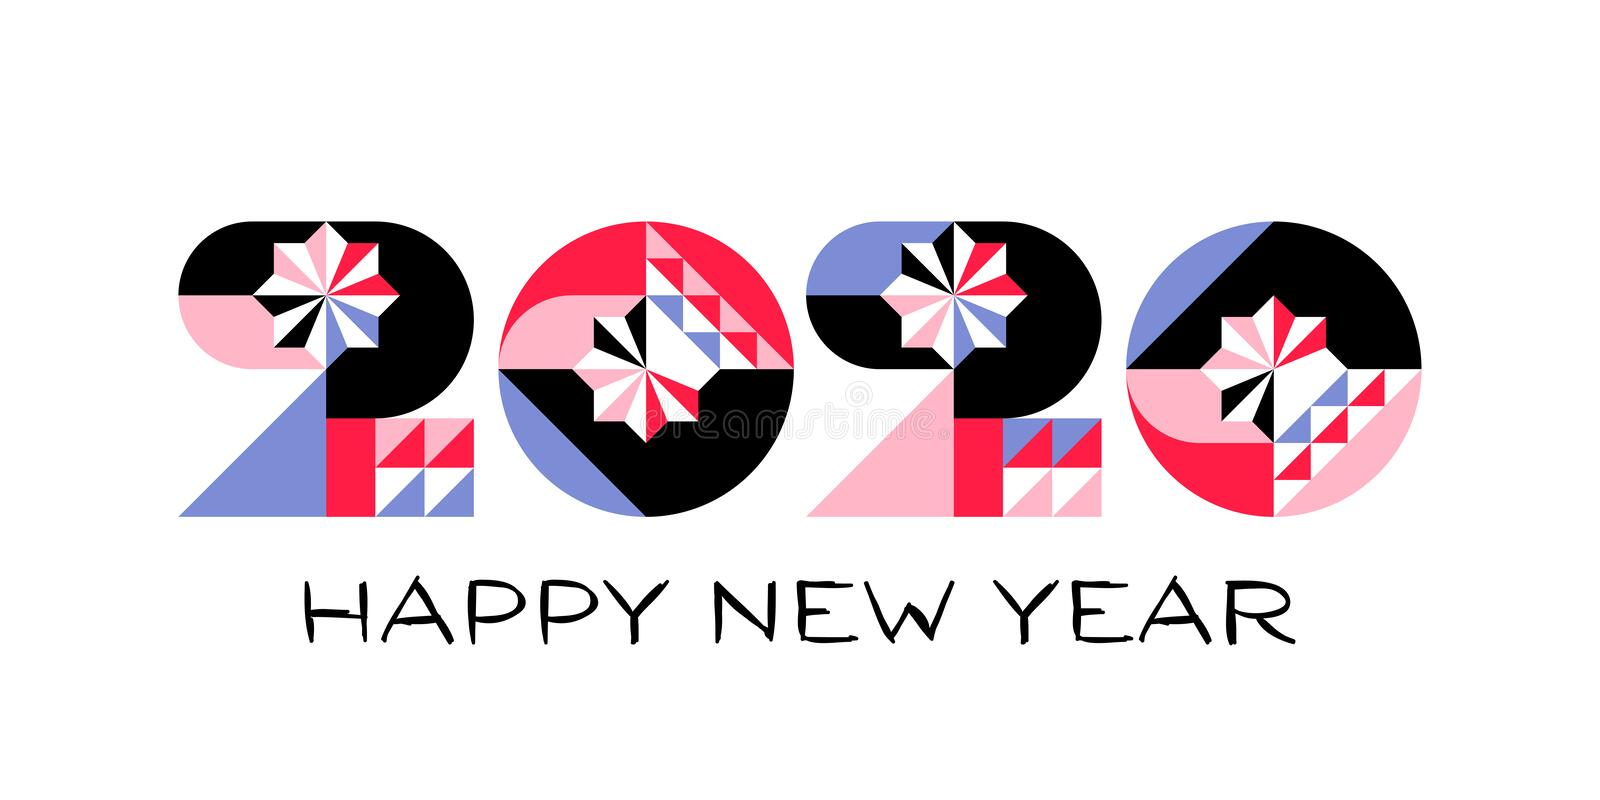 Happy New Year 2020 logo with multicolored geometric numbers with abstract design elements on white background royalty free illustration